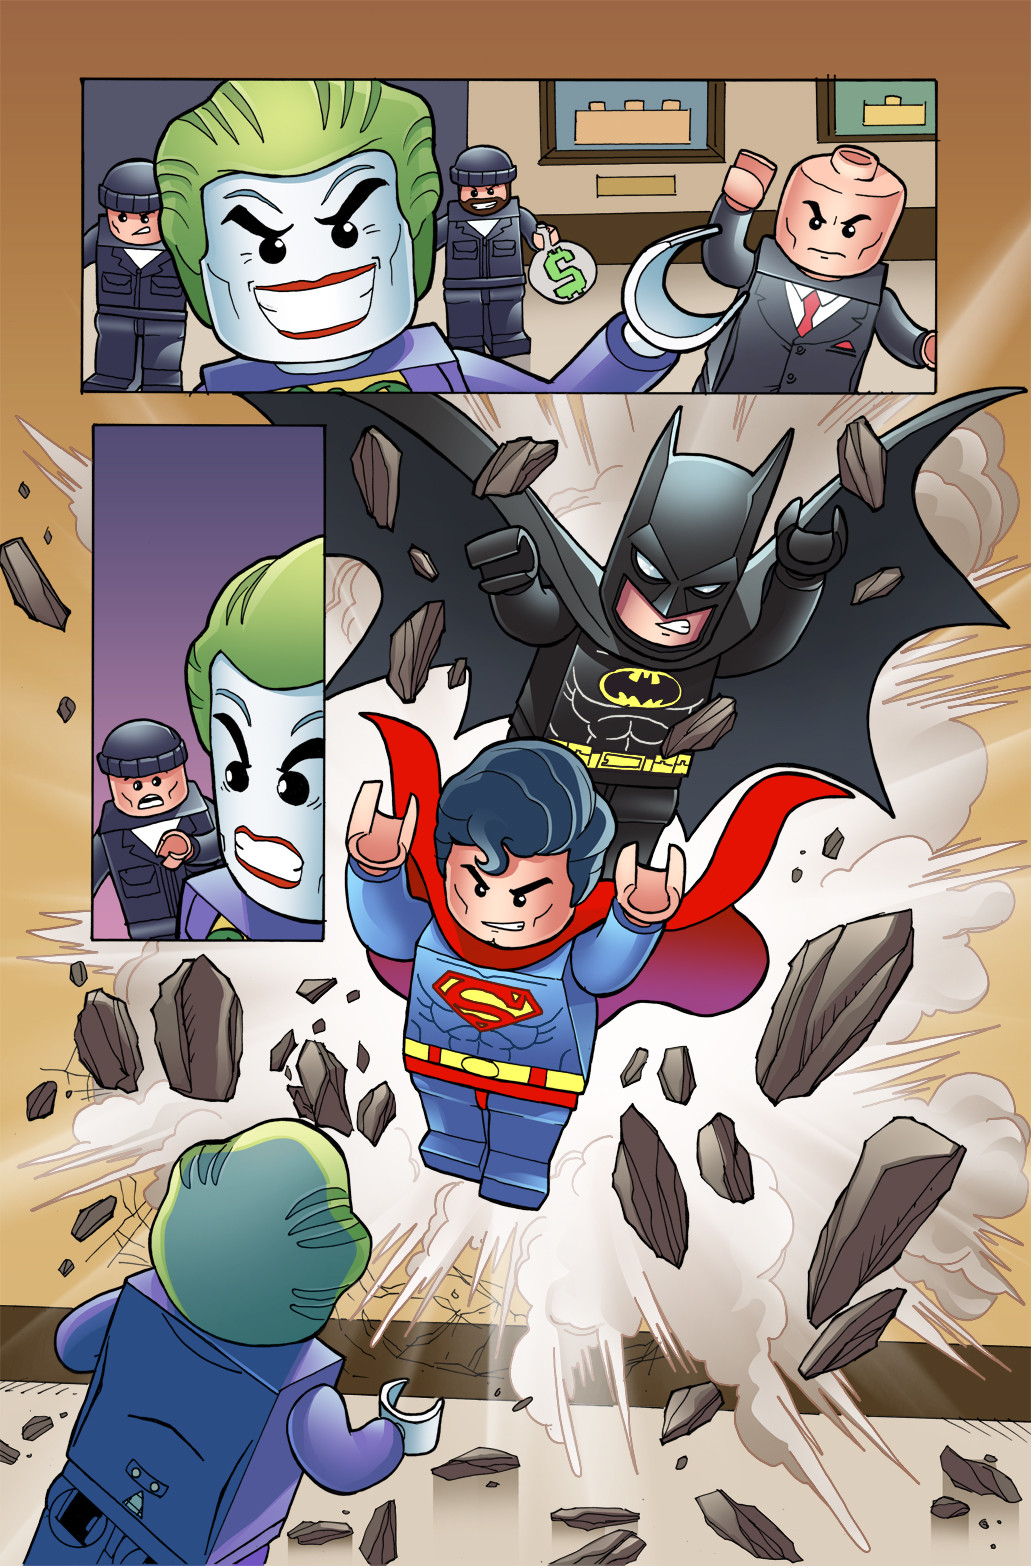 Gabriel cassata lego superman batman colors2